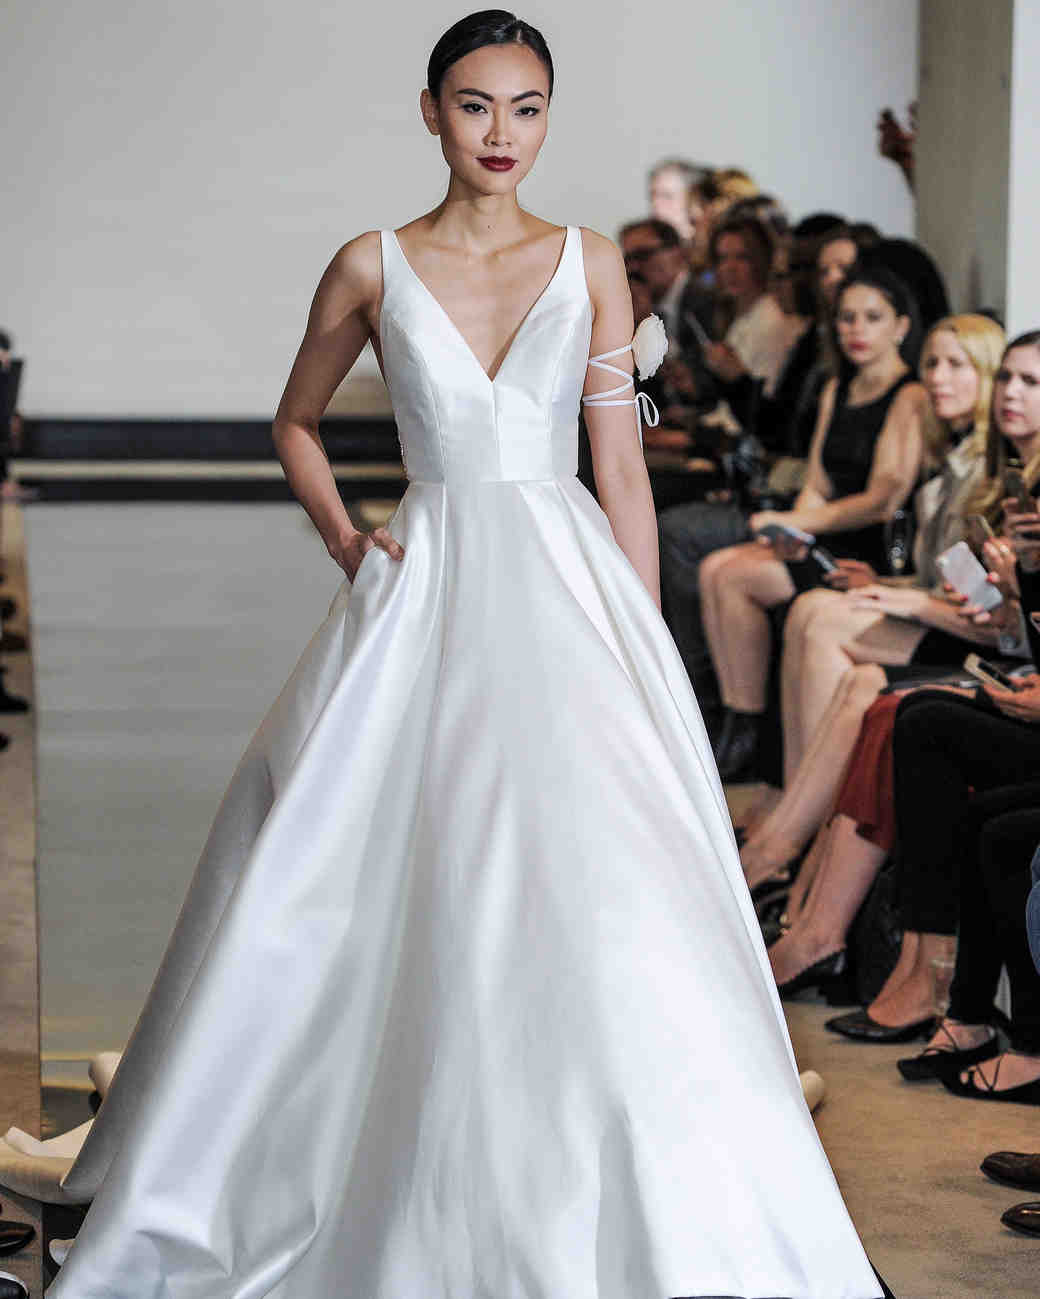 Wedding Dresess: Simple Wedding Dresses That Are Just Plain Chic